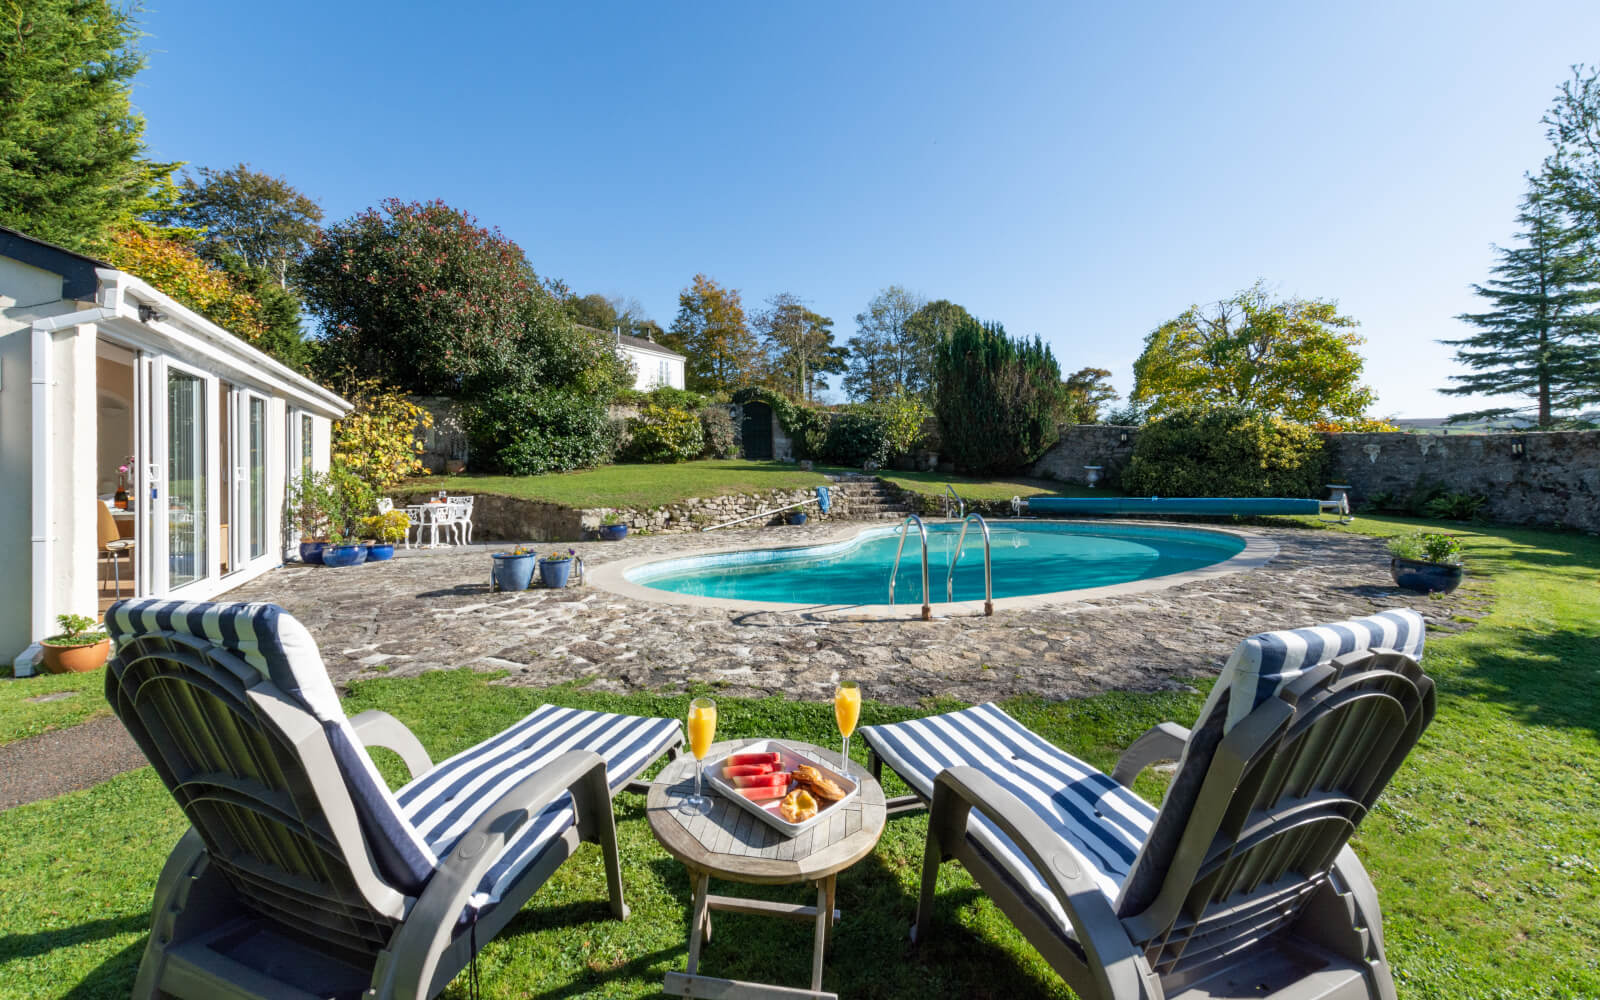 Holiday Cottages With Swimming Pools In Thirston To Rent - Save up to 60%